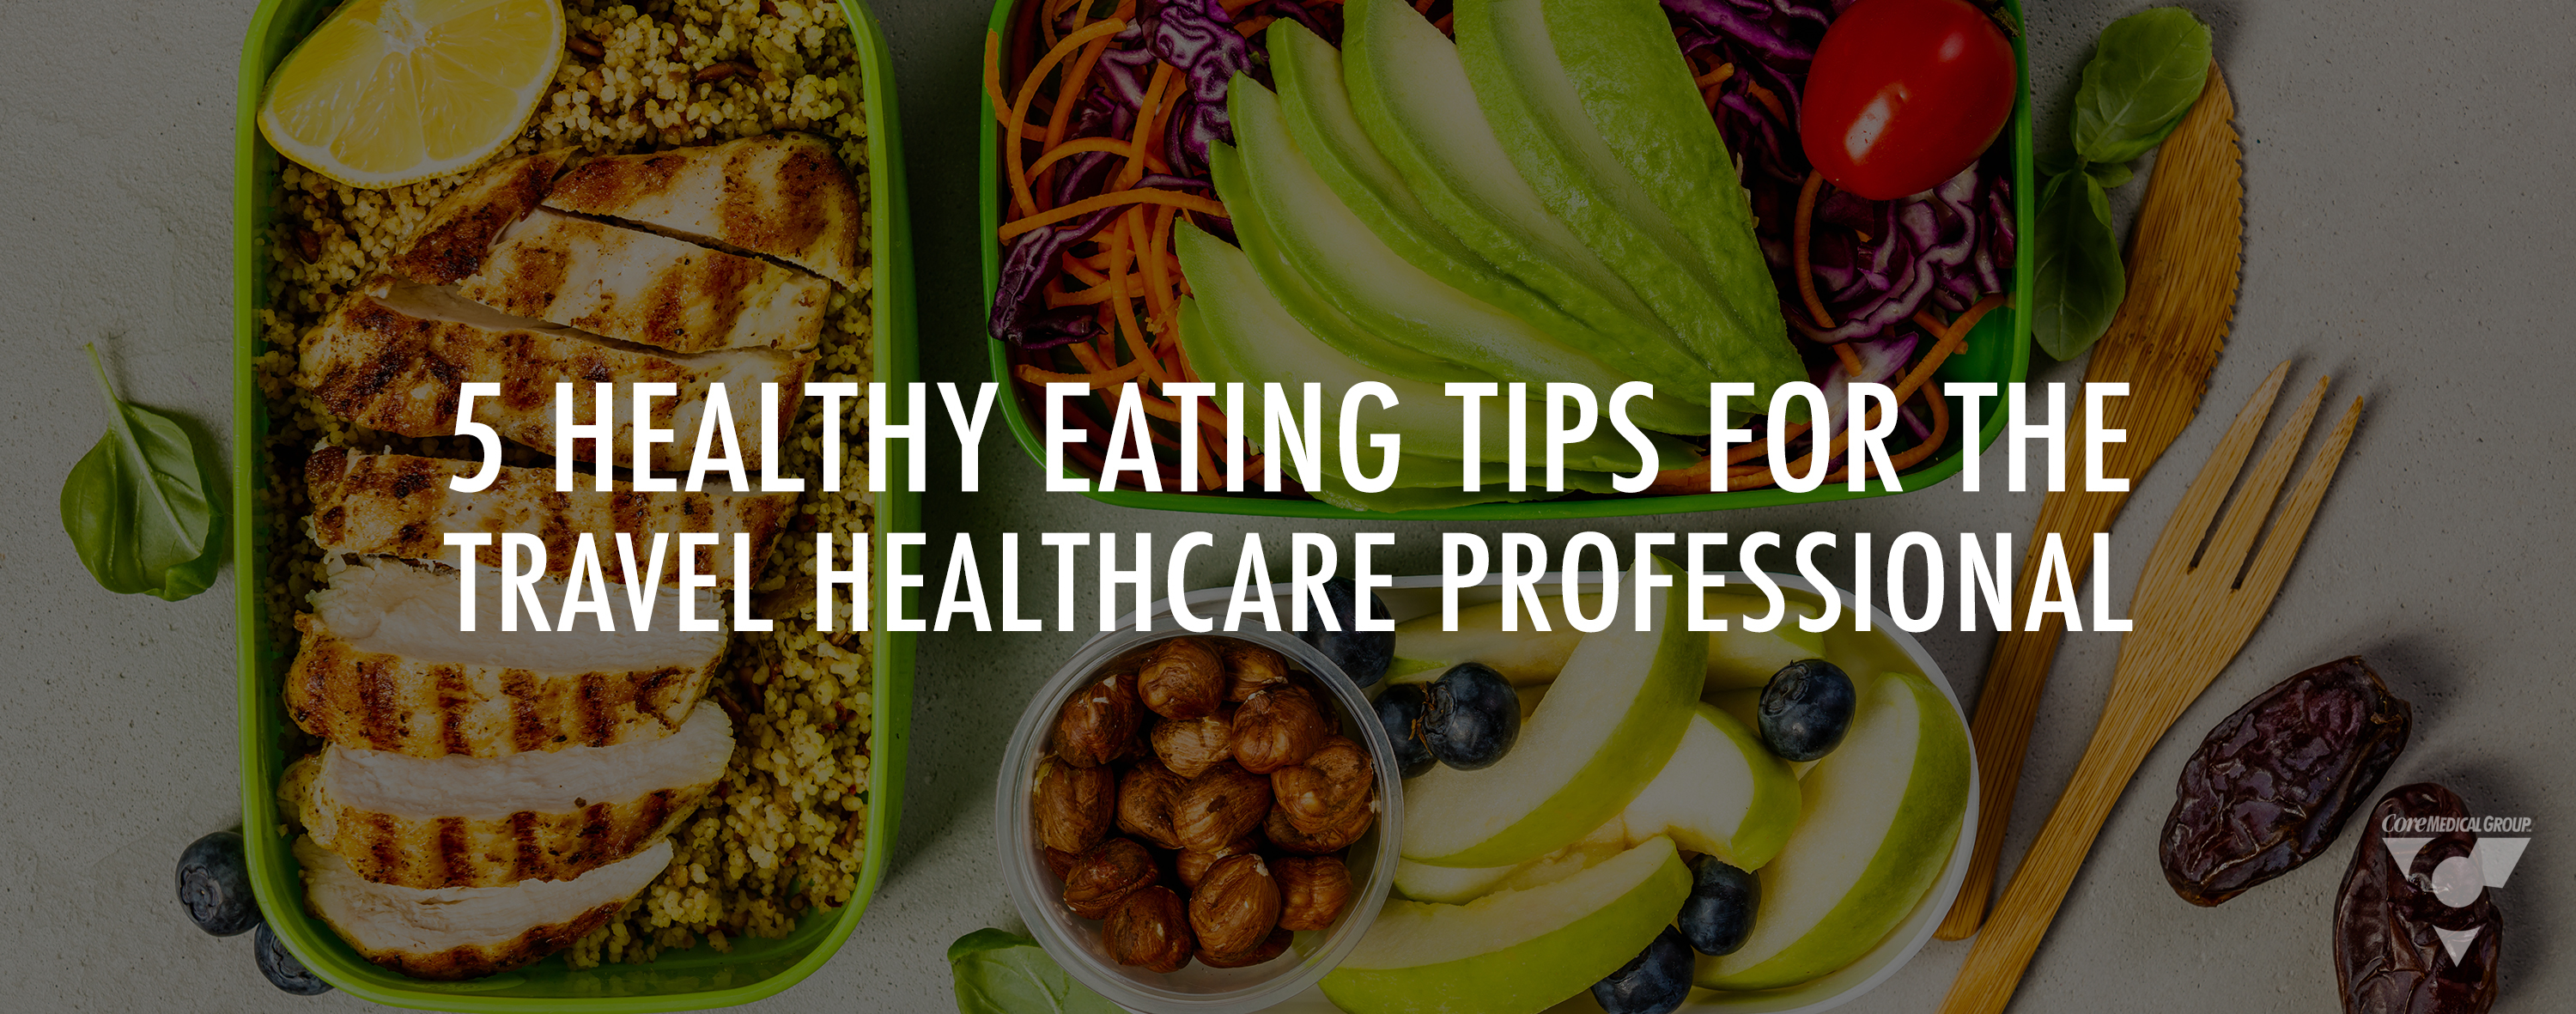 5 healthy eating tips for healthcare professionals